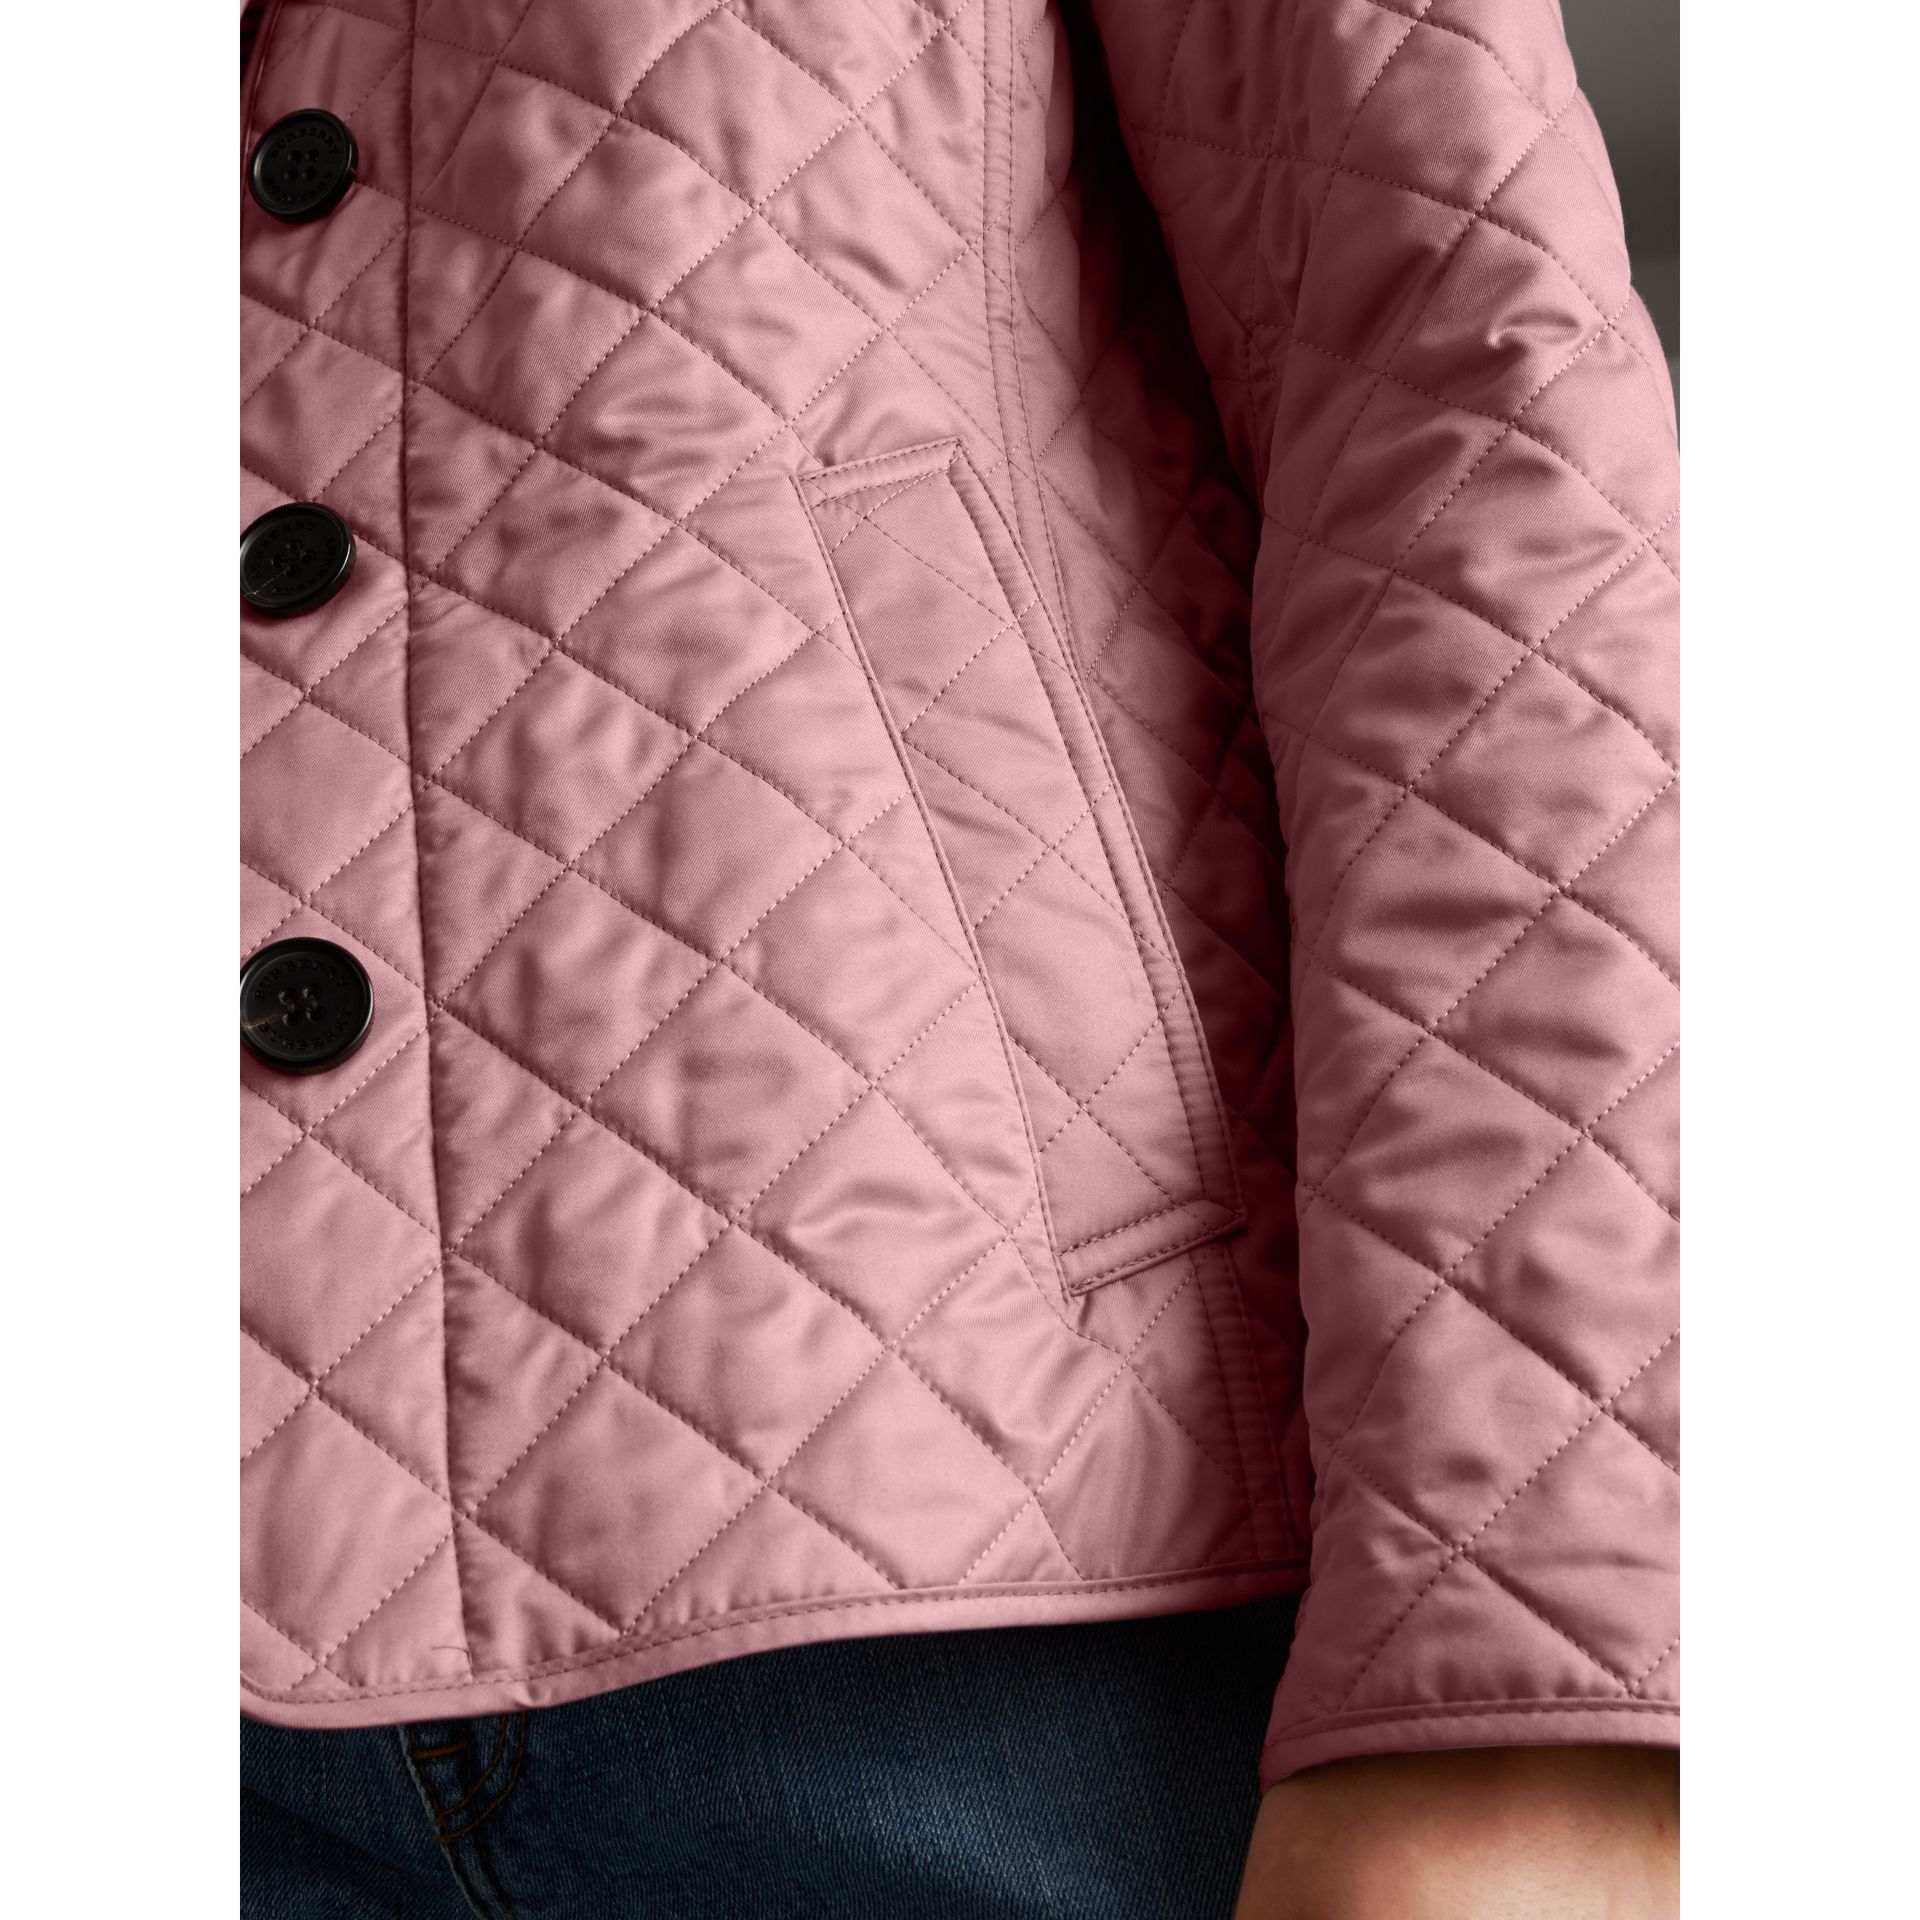 Diamond Quilted Jacket in Vintage Rose - Women | Burberry - gallery image 5